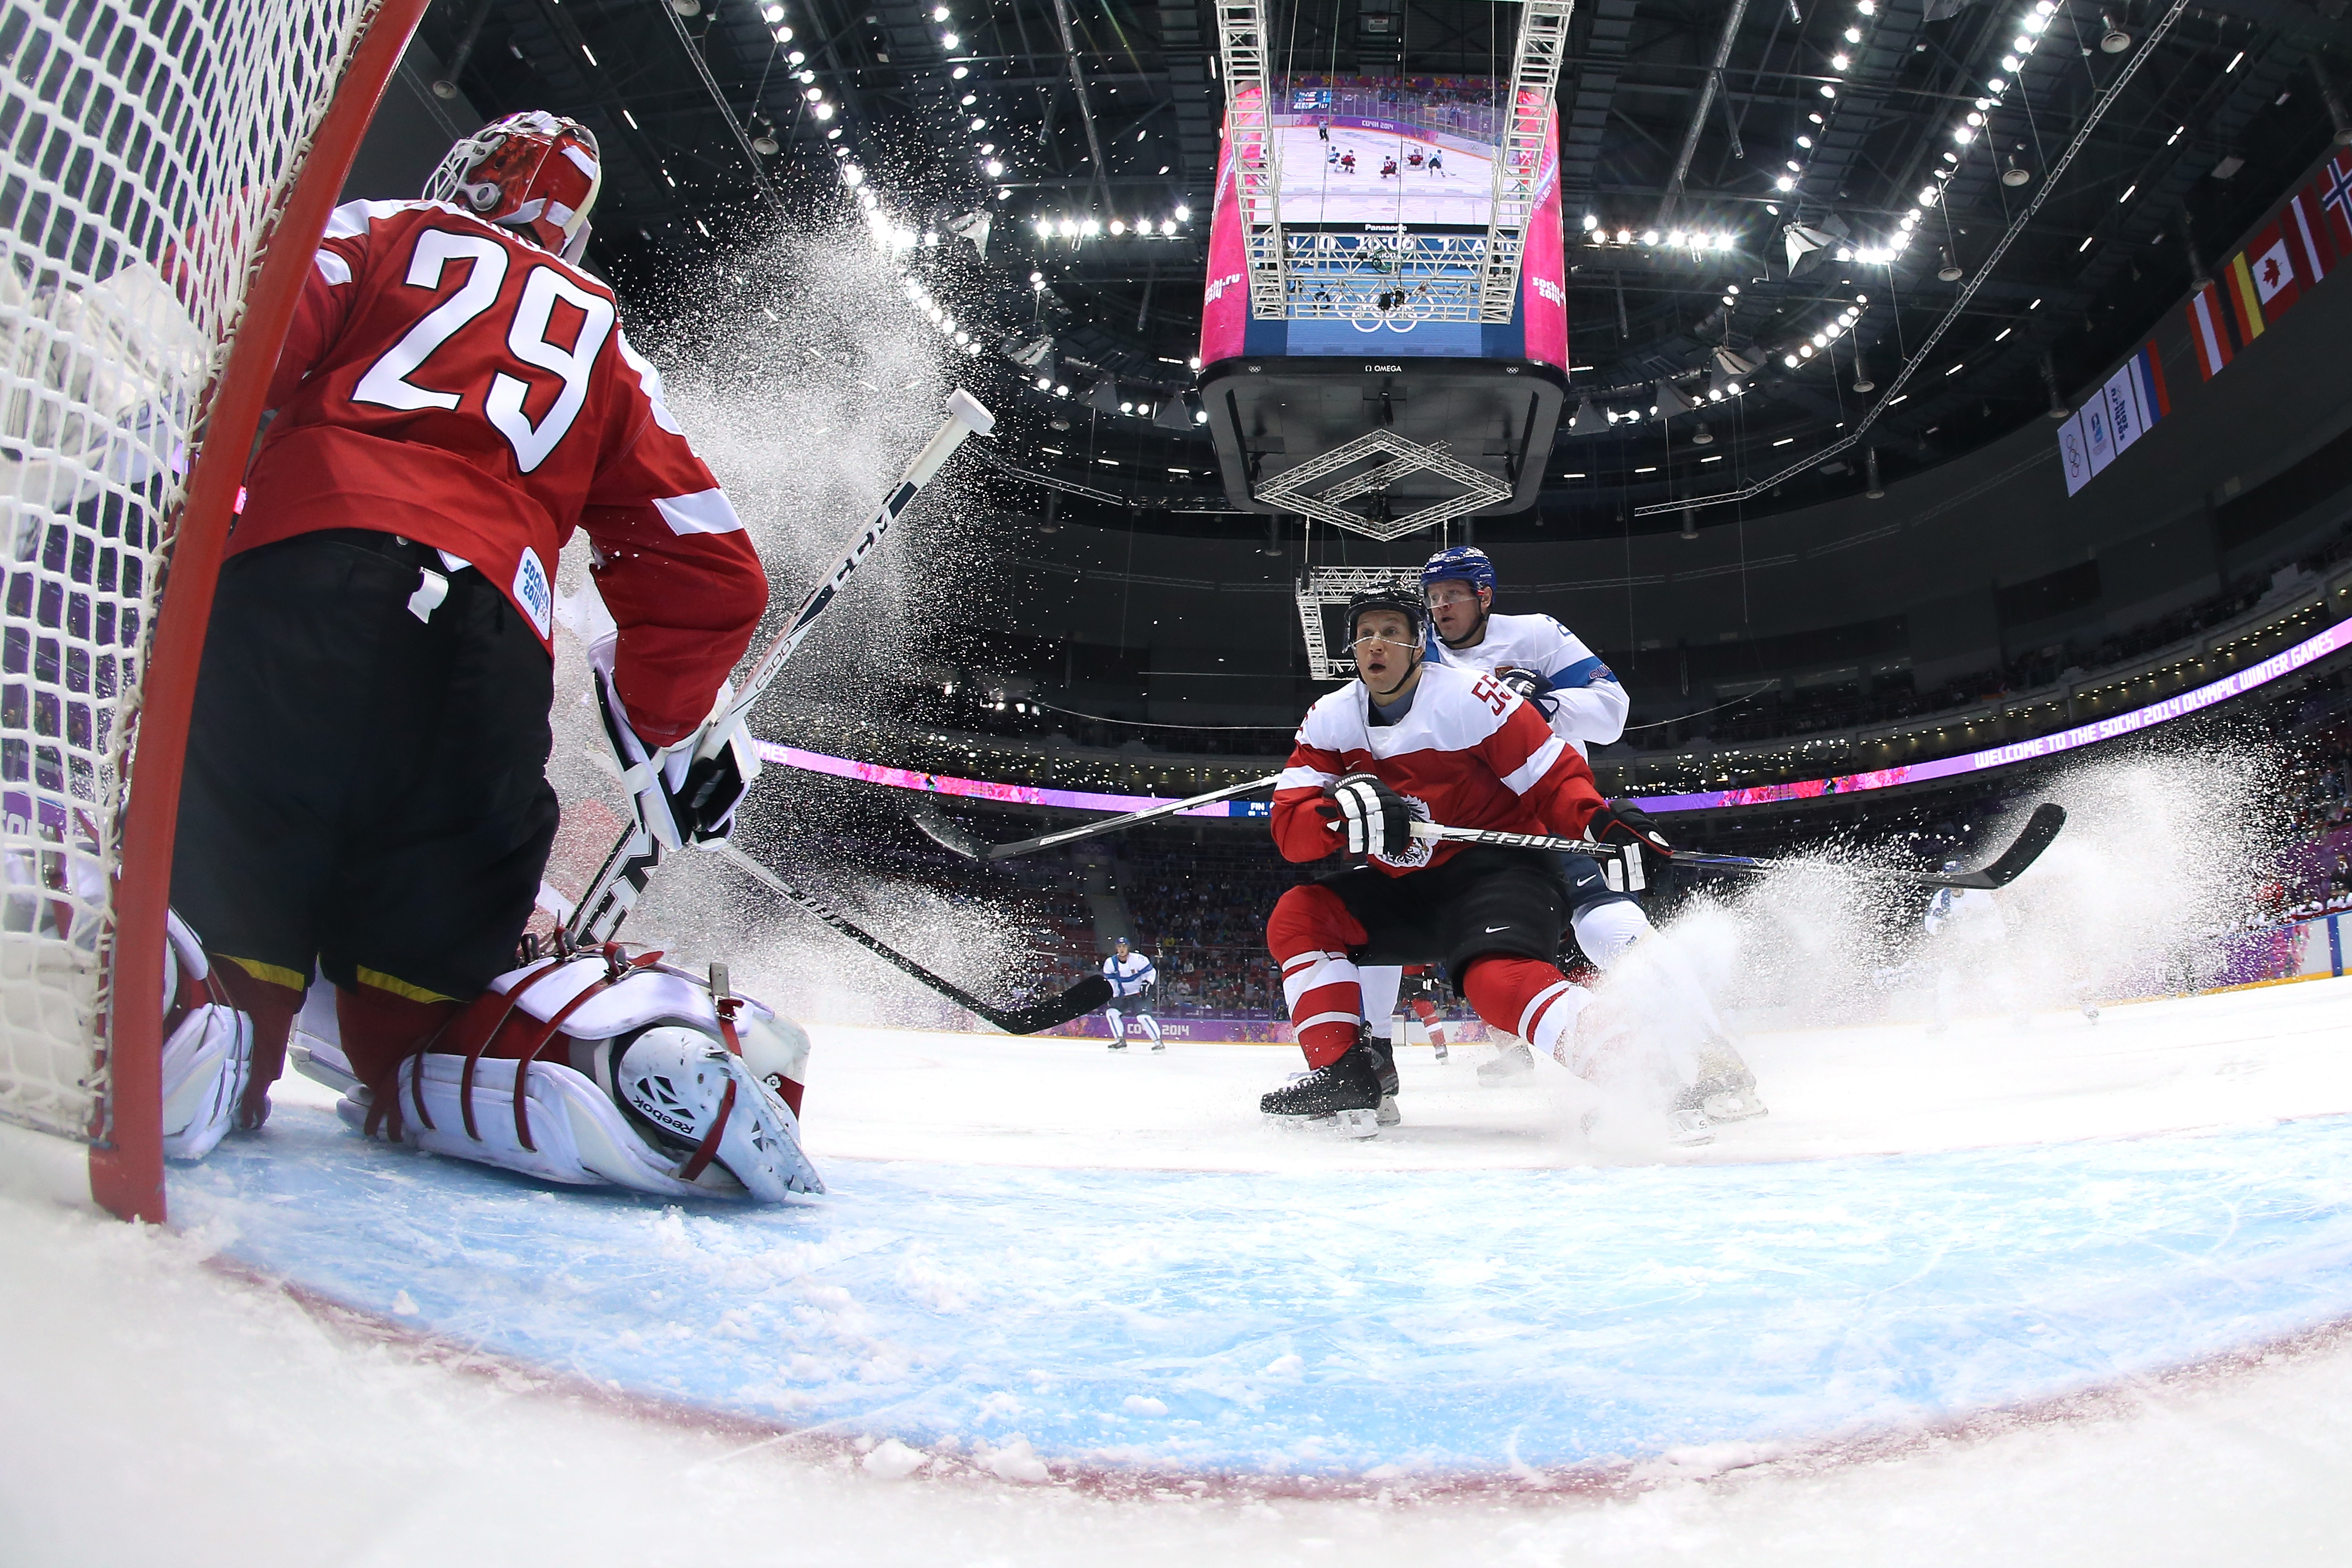 Bernhard Starkbaum #29 of Austria tends goal against Finland during the Men's Ice Hockey Preliminary Round Group B game.